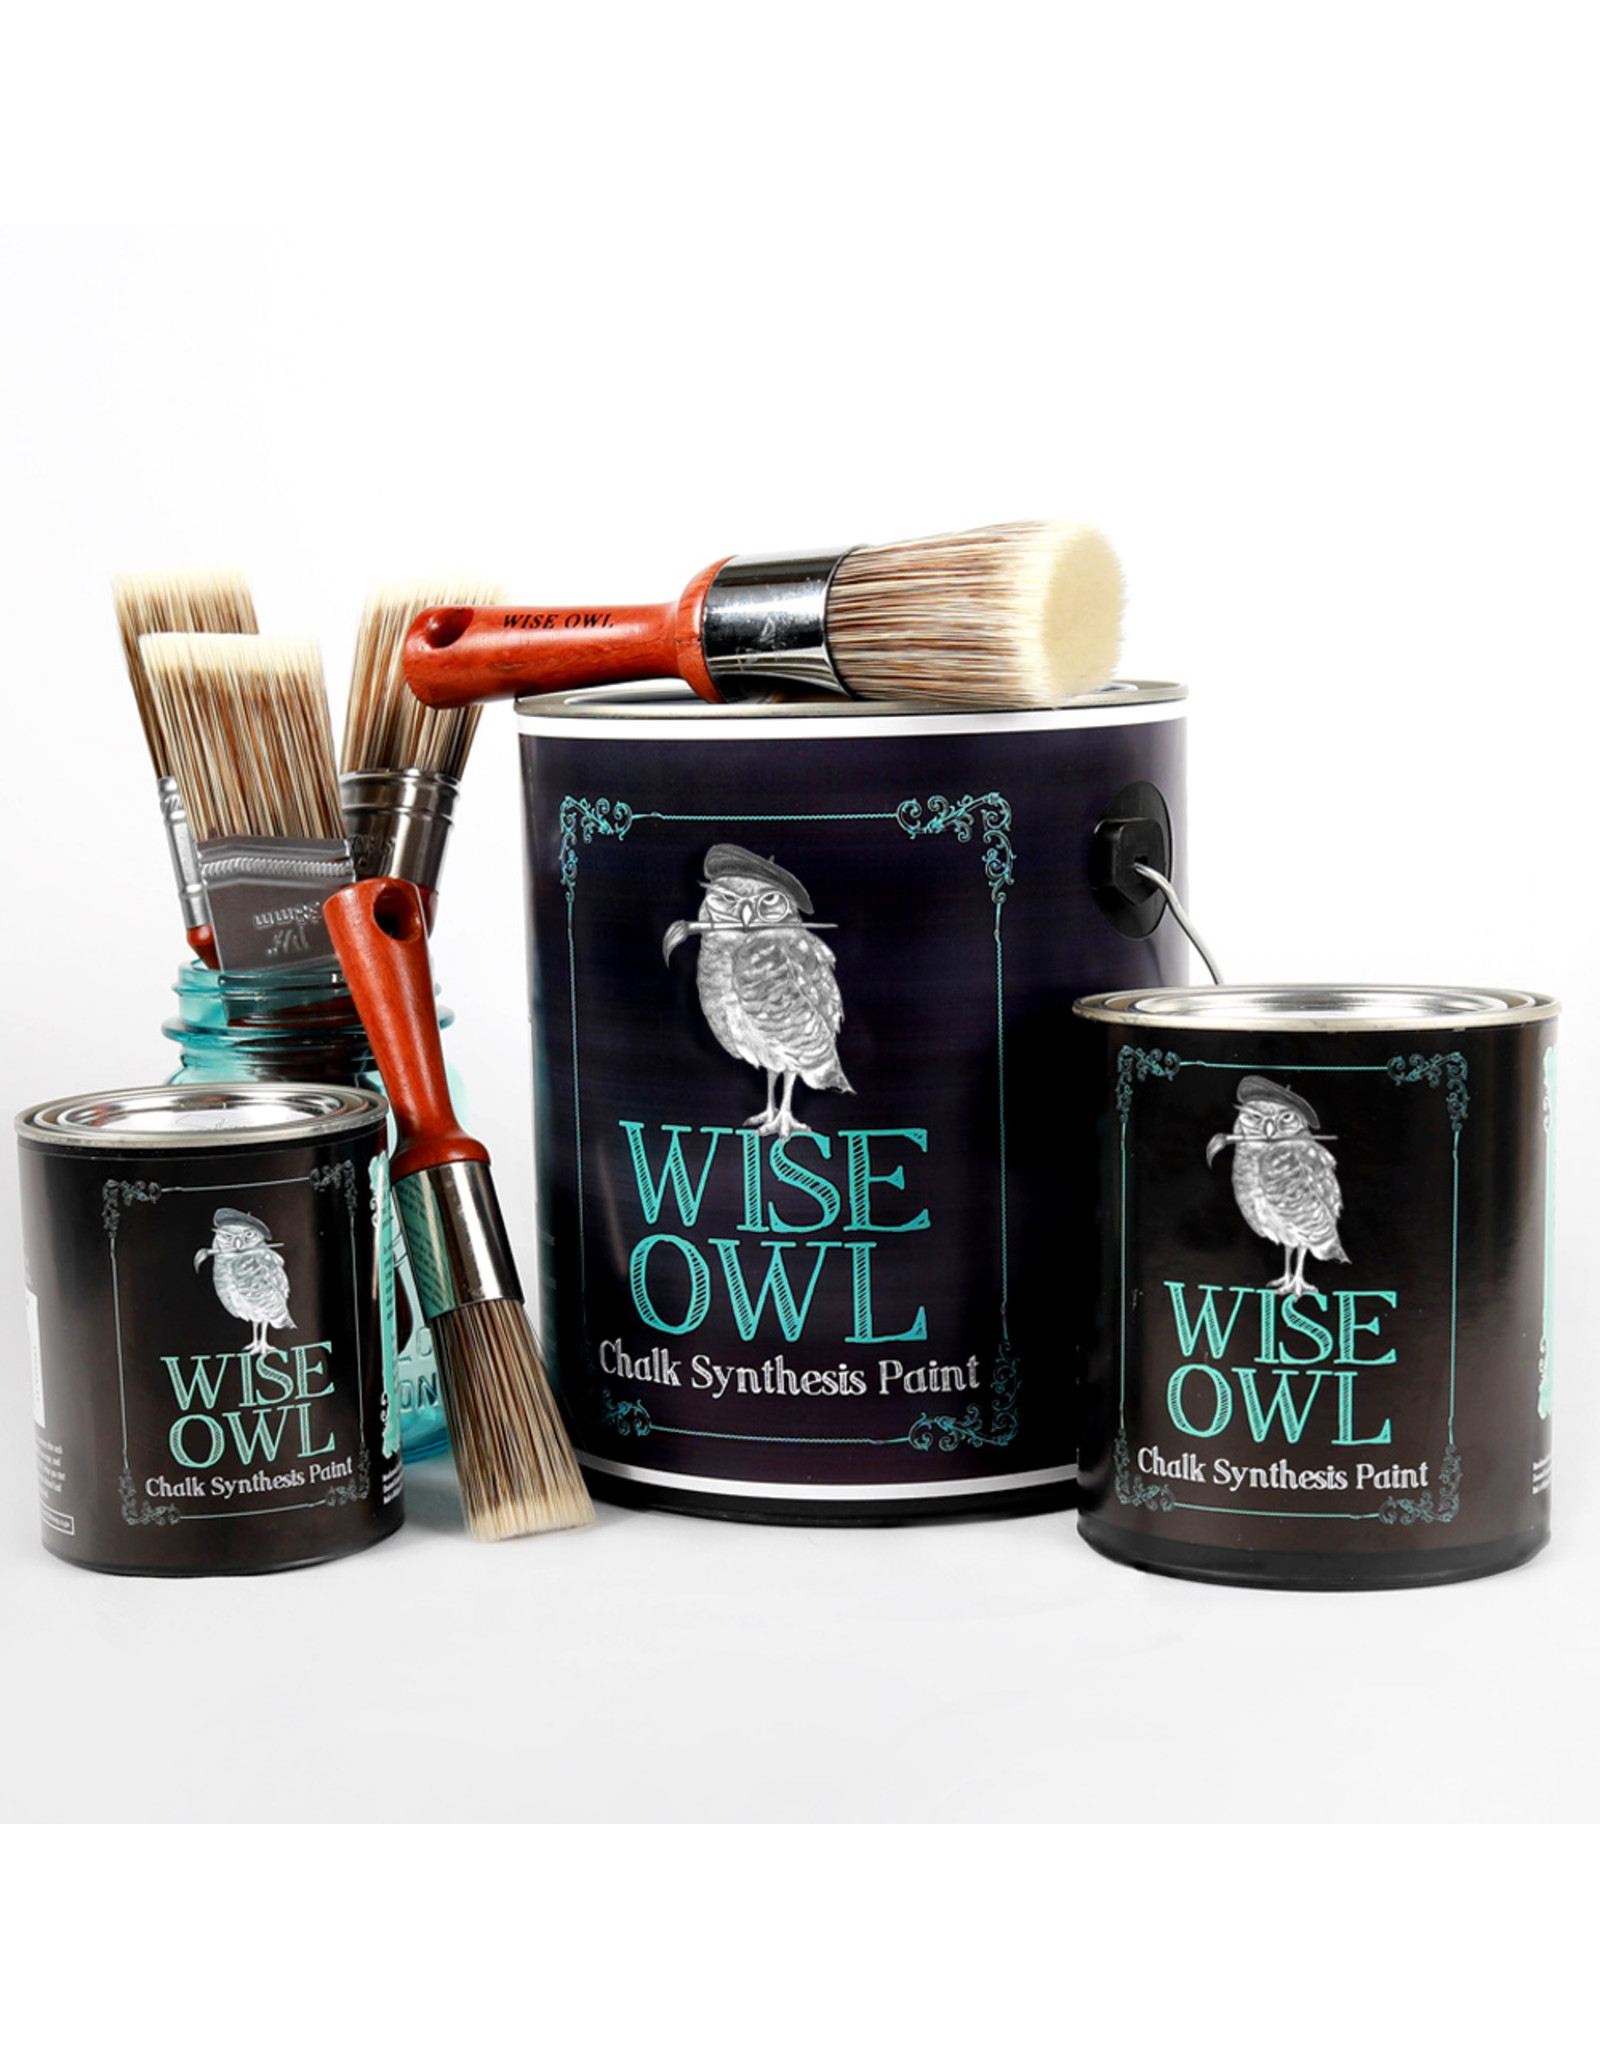 Wise Owl Paint Chalk Synthesis Paint Abyss-Pint